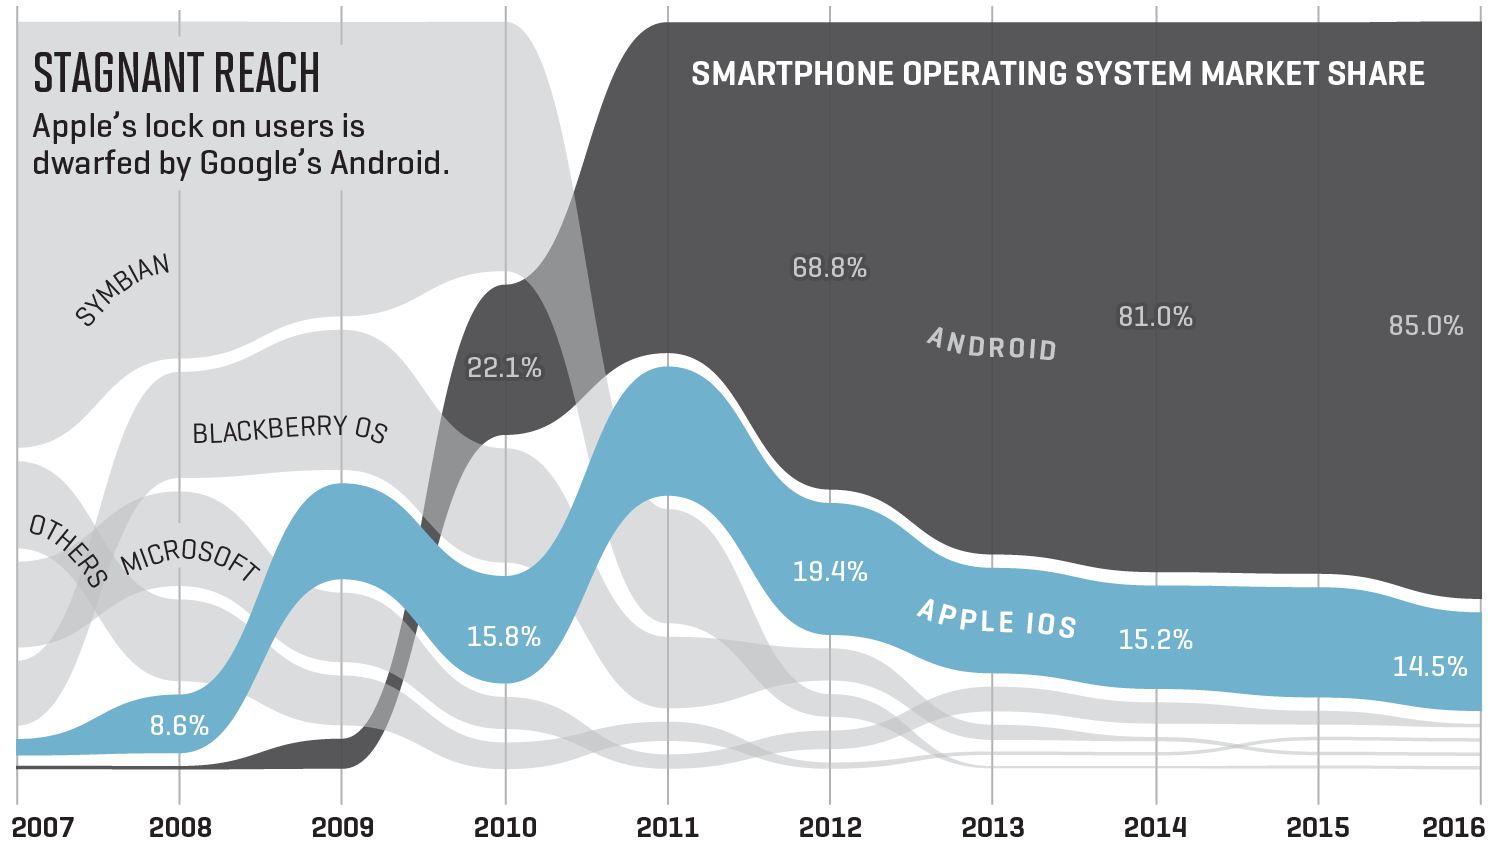 Chart shows smartphone operating system market share